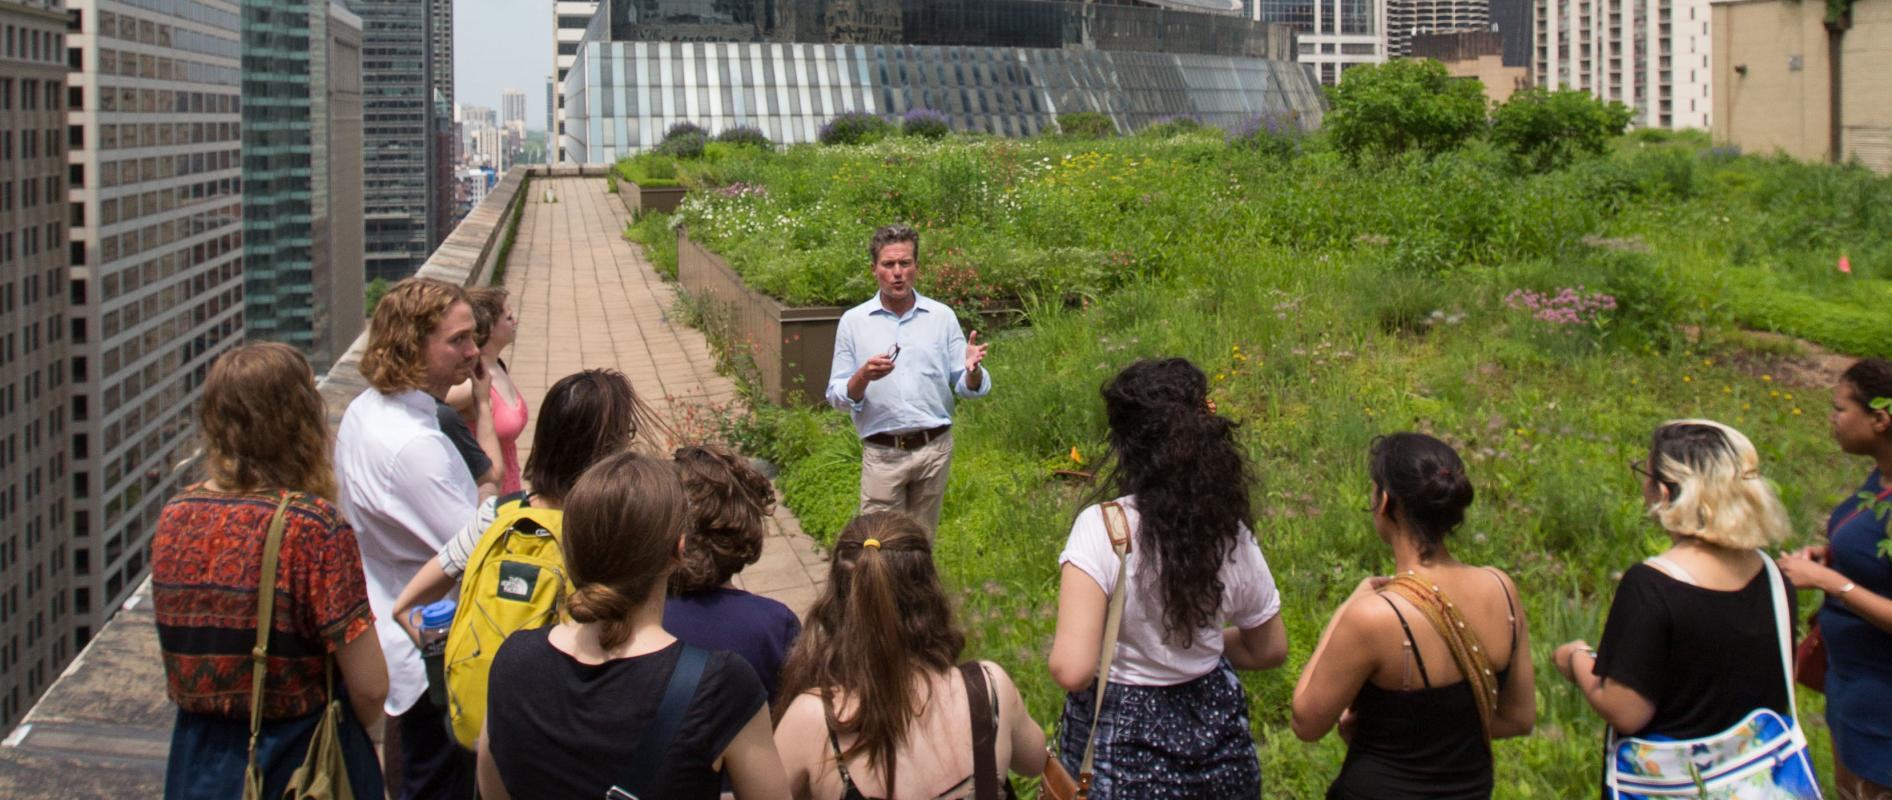 Students on a field trip to Chicago's City Hall Rooftop Garden